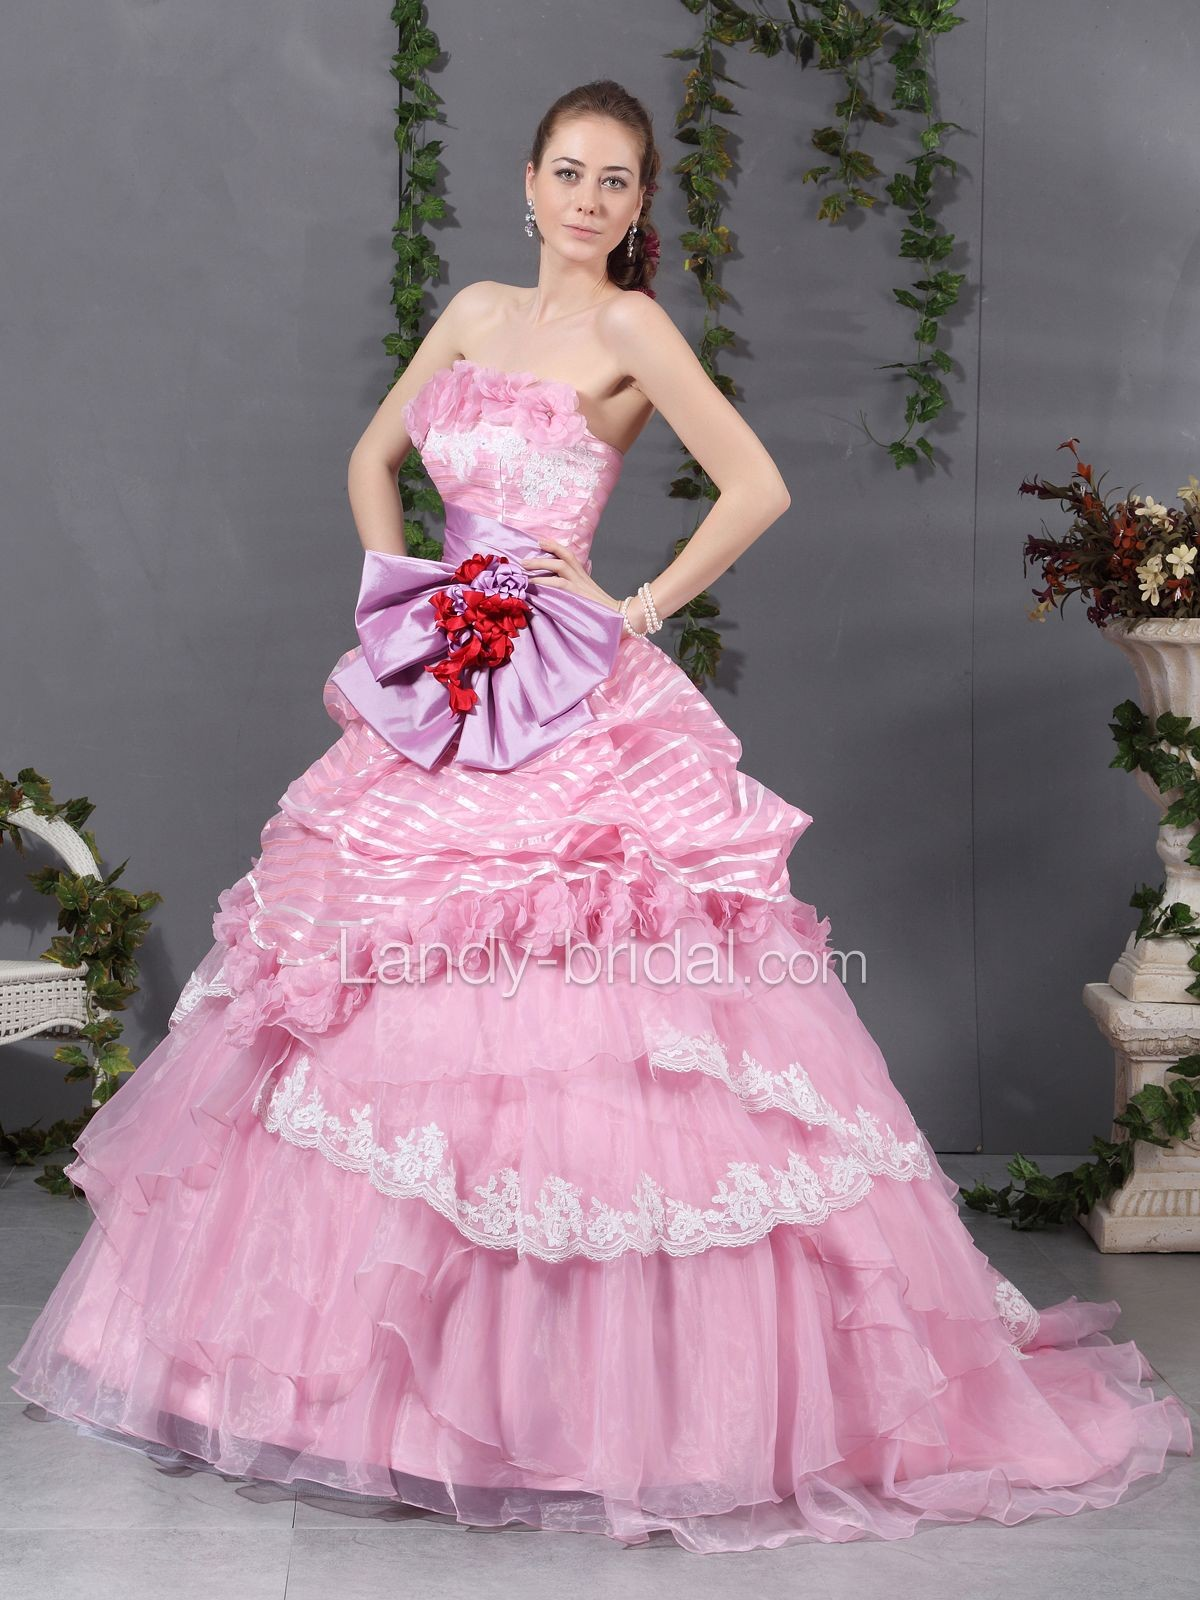 dress, romance, wedding, wedding dress